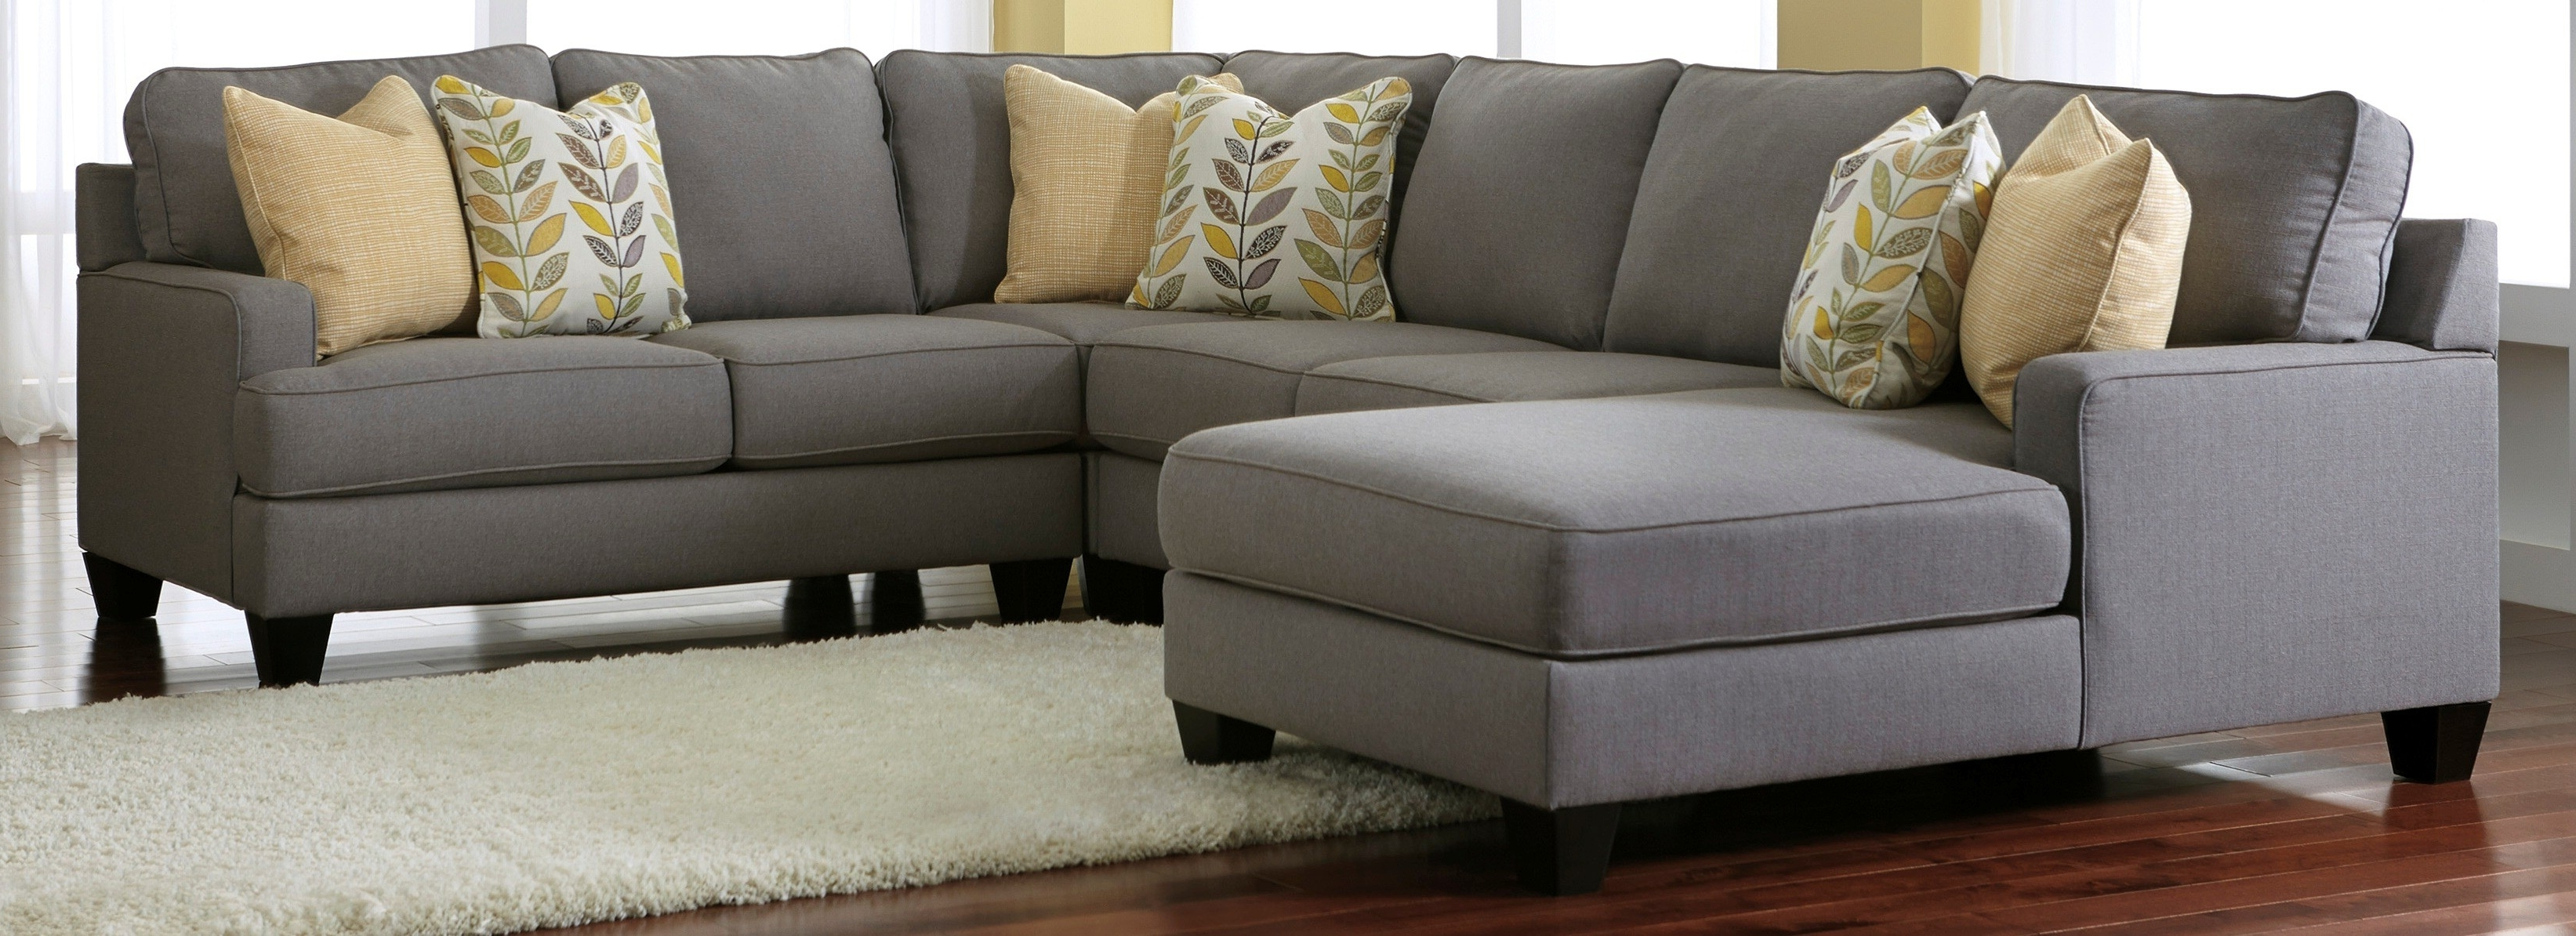 Ashley Tufted Sofas For Most Current Ashley Furniture Sectional Sofa (View 5 of 20)